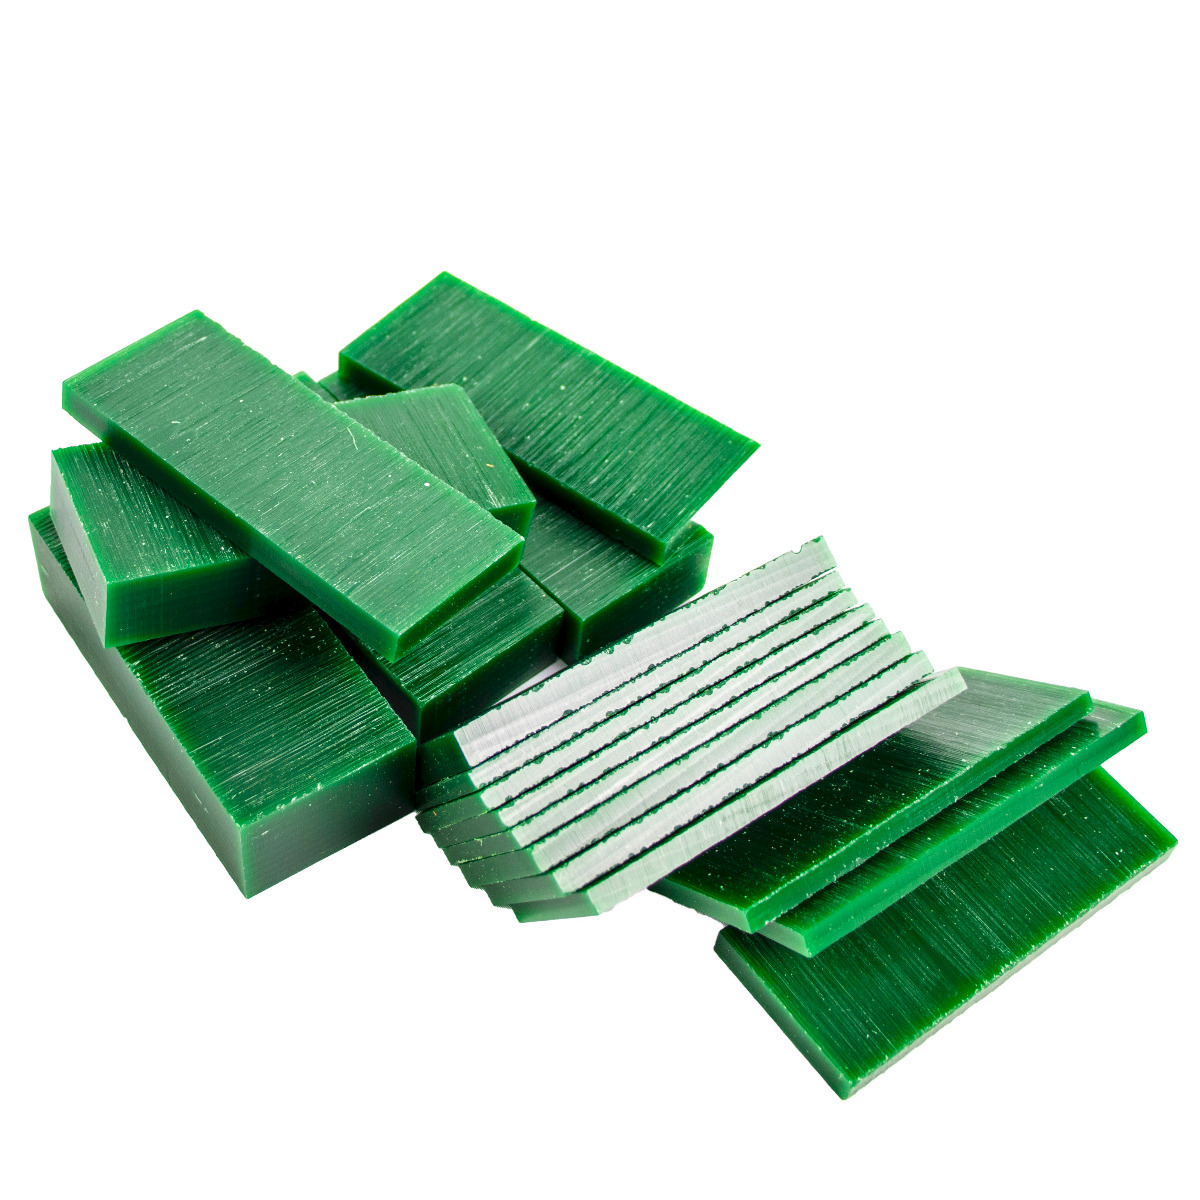 """File-A-Wax Assorted Slices - Green - 1lb Box 3/16 """"- 1"""" Thick (4.77mm - 25.4mm)"""